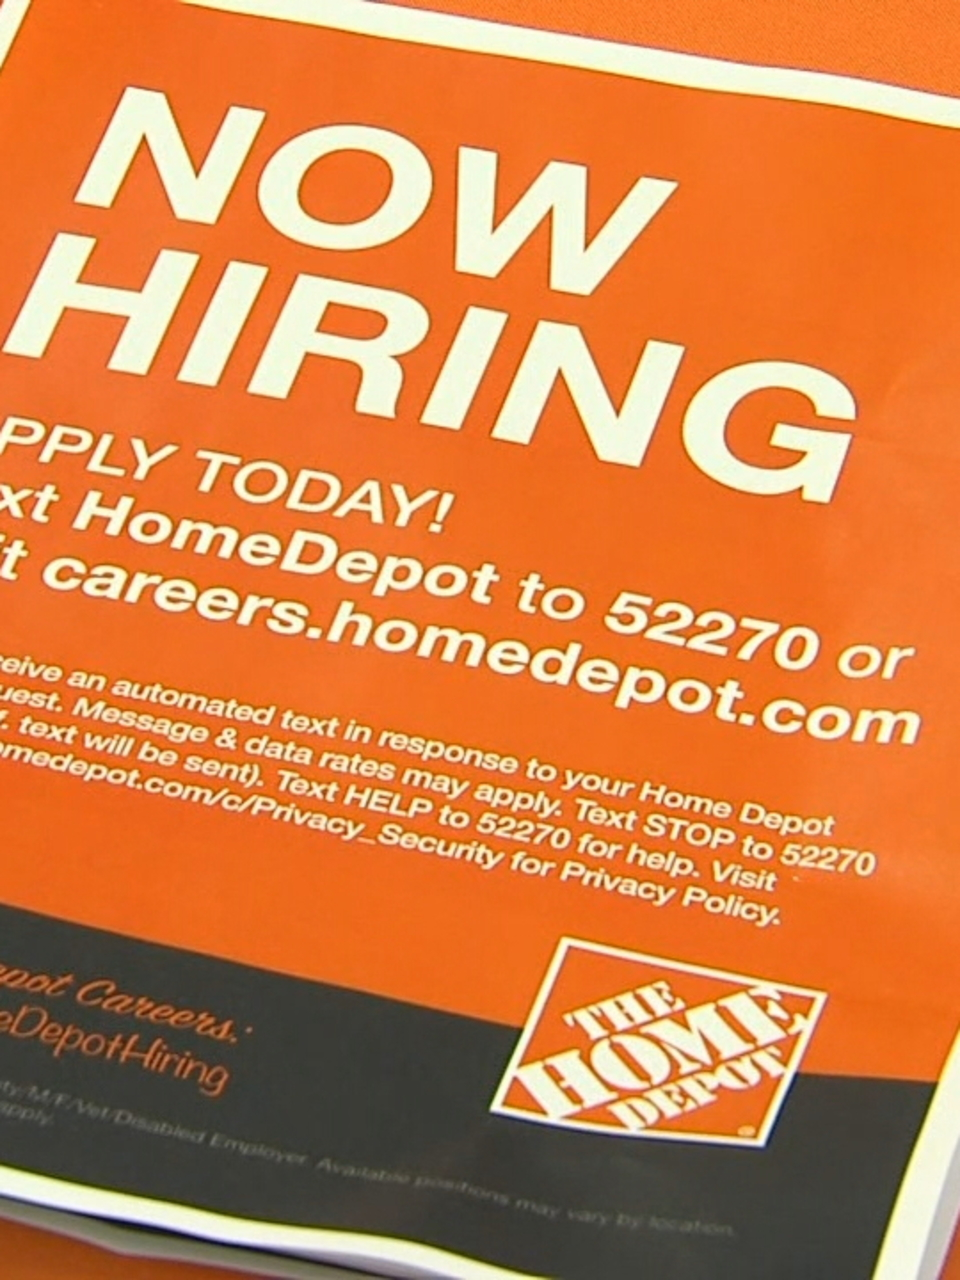 Home Depot Locations Near Me Now : depot, locations, Depot, Holds, Fairs, Thursday,, Looking, Local, Workers